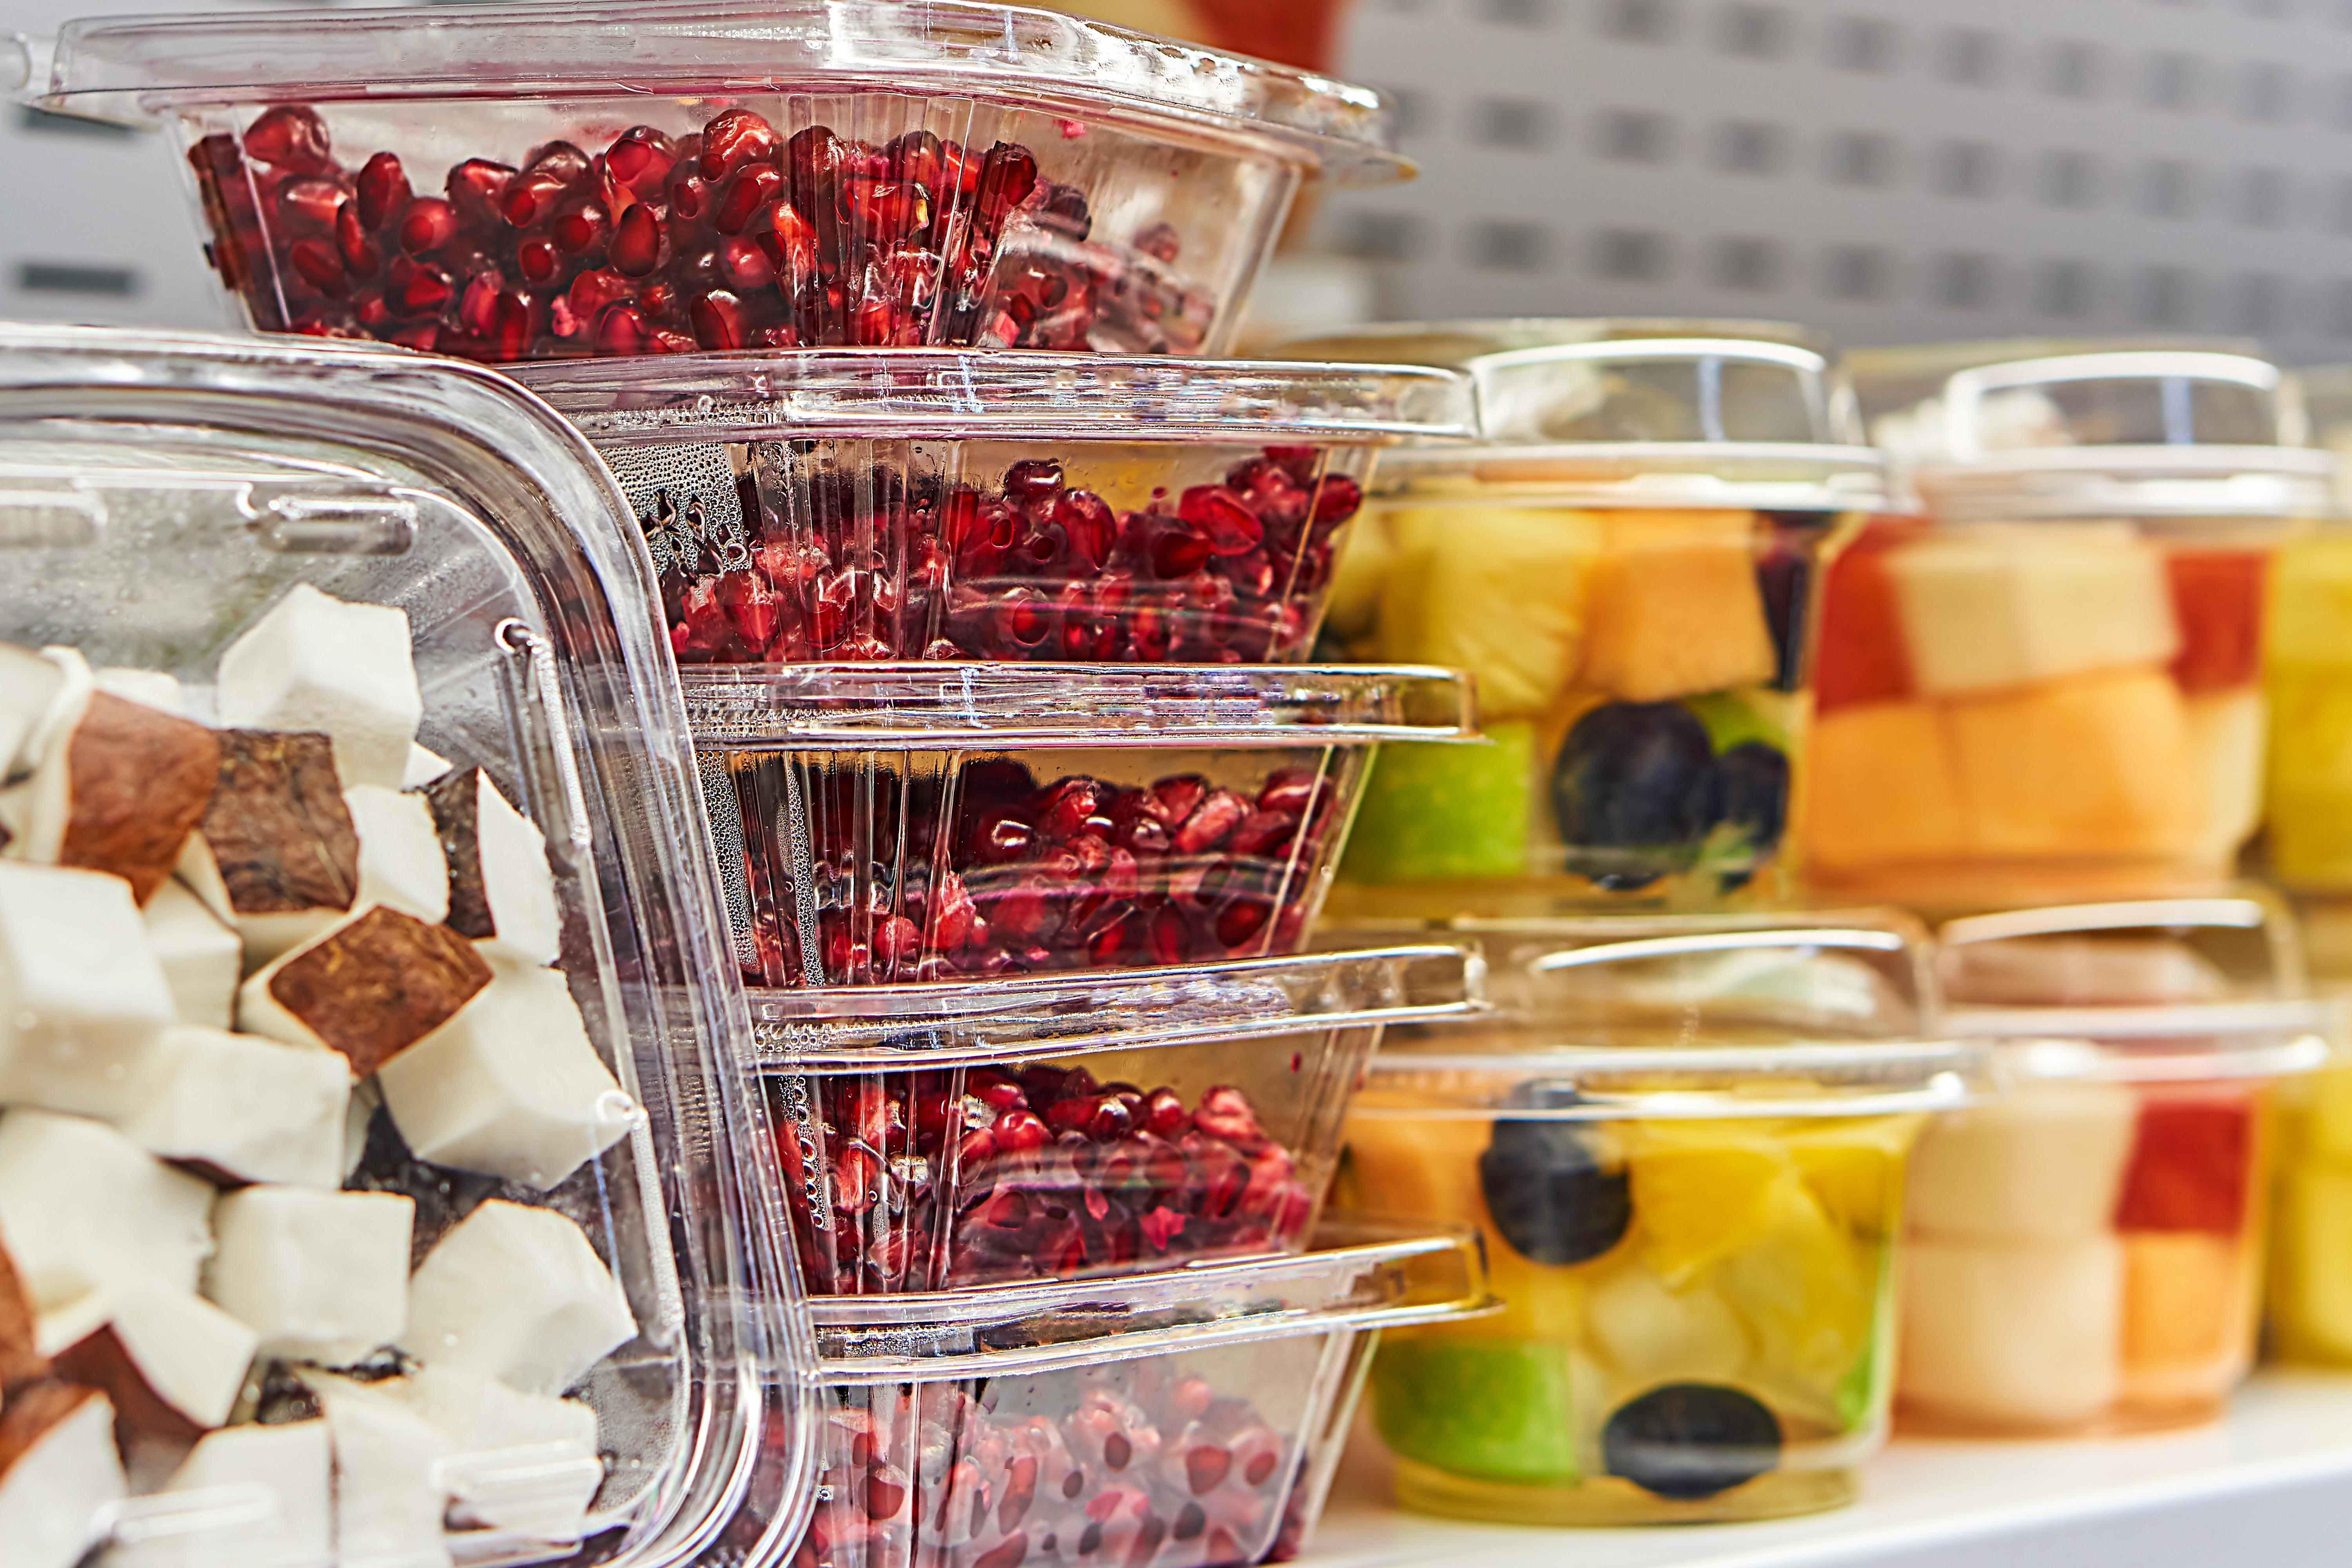 Food packaging is full of toxic chemicals – here's how it could affect your health